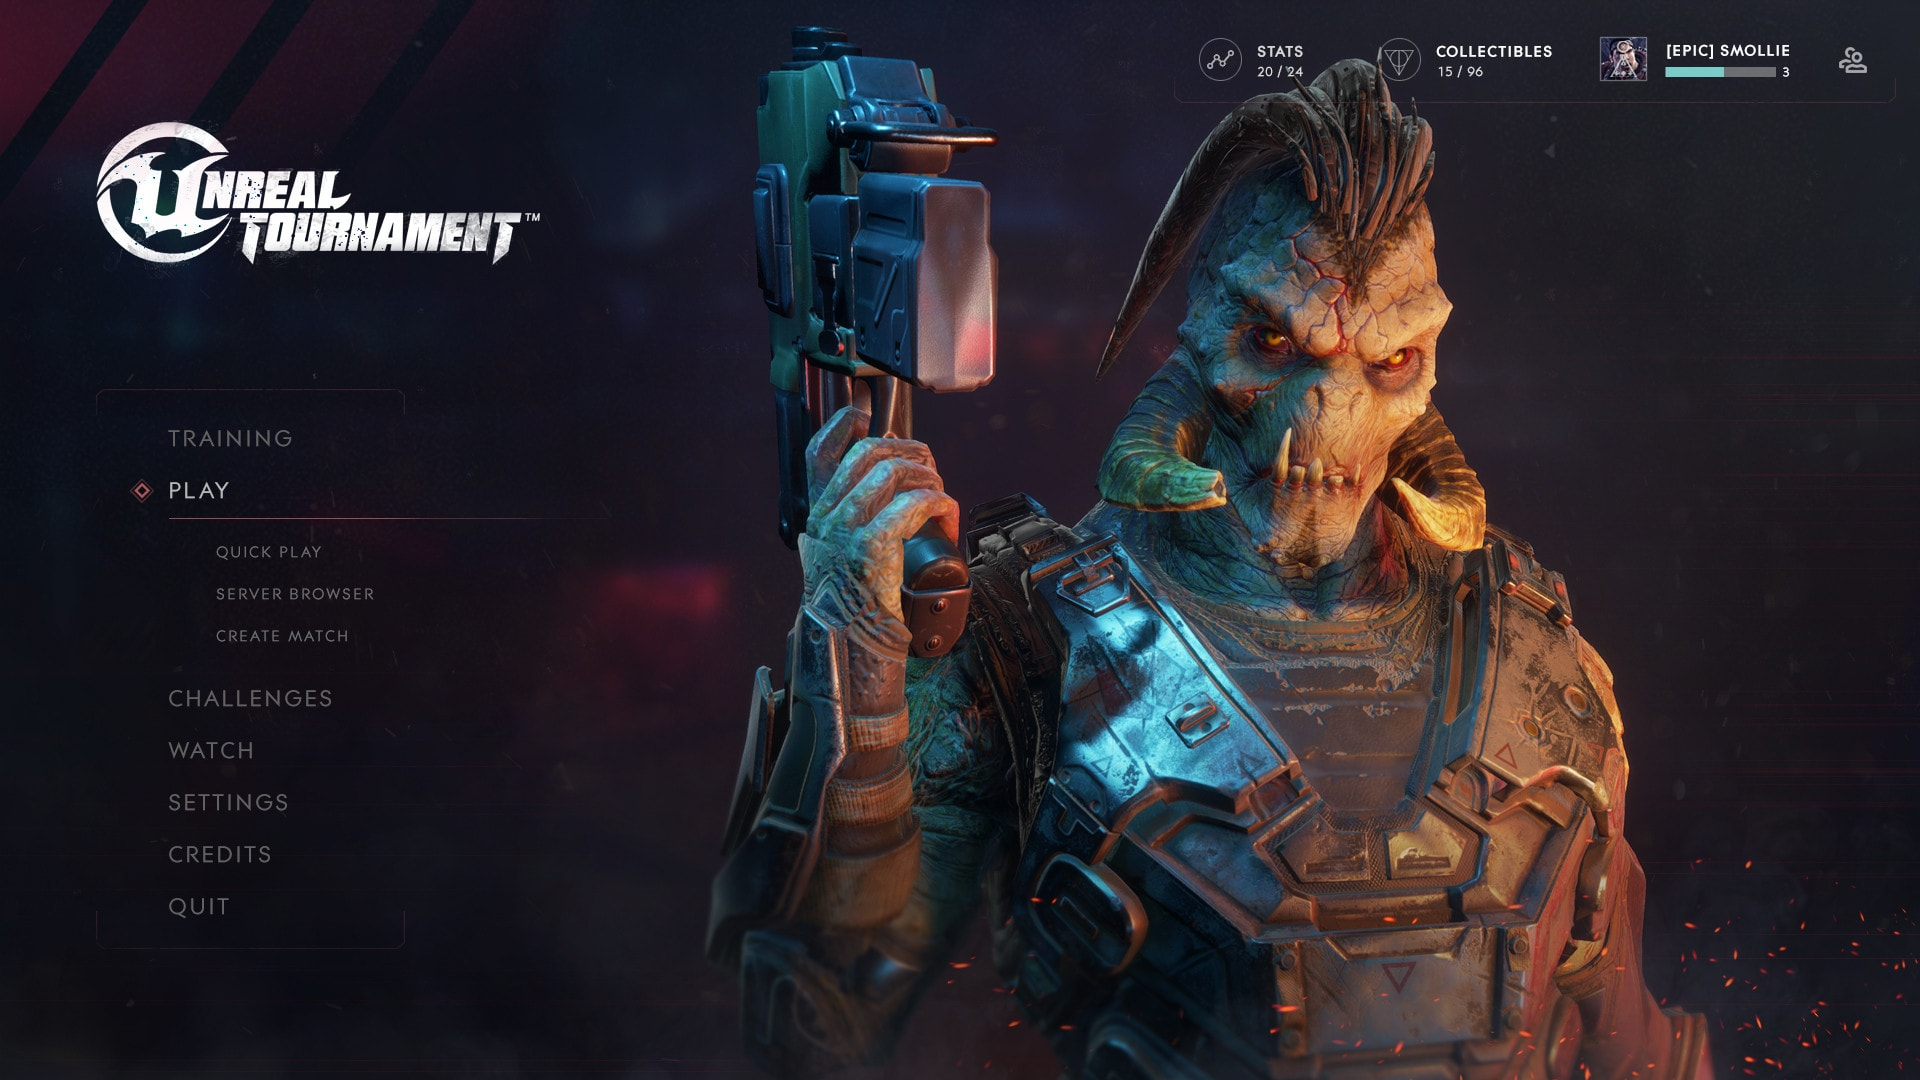 Unreal Tournament Epic Games Free to Play